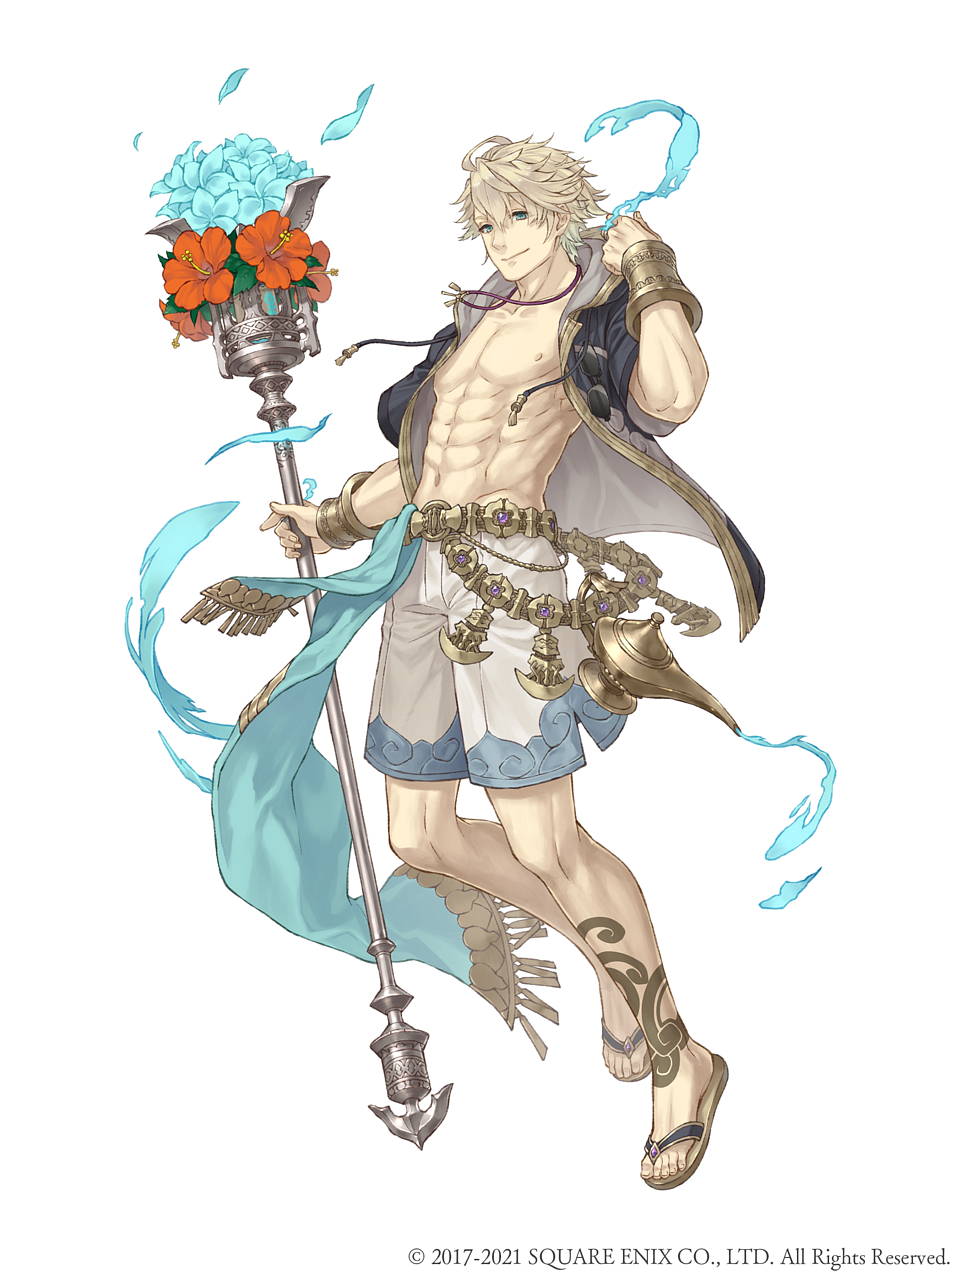 1boy abs ahoge aladdin_(sinoalice) blonde_hair blue_eyes bouquet bracer flower full_body highres holding holding_staff jewelry ji_no looking_at_viewer necklace official_art oil_lamp petals sandals shorts sinoalice smile solo square_enix staff sunglasses tattoo white_background